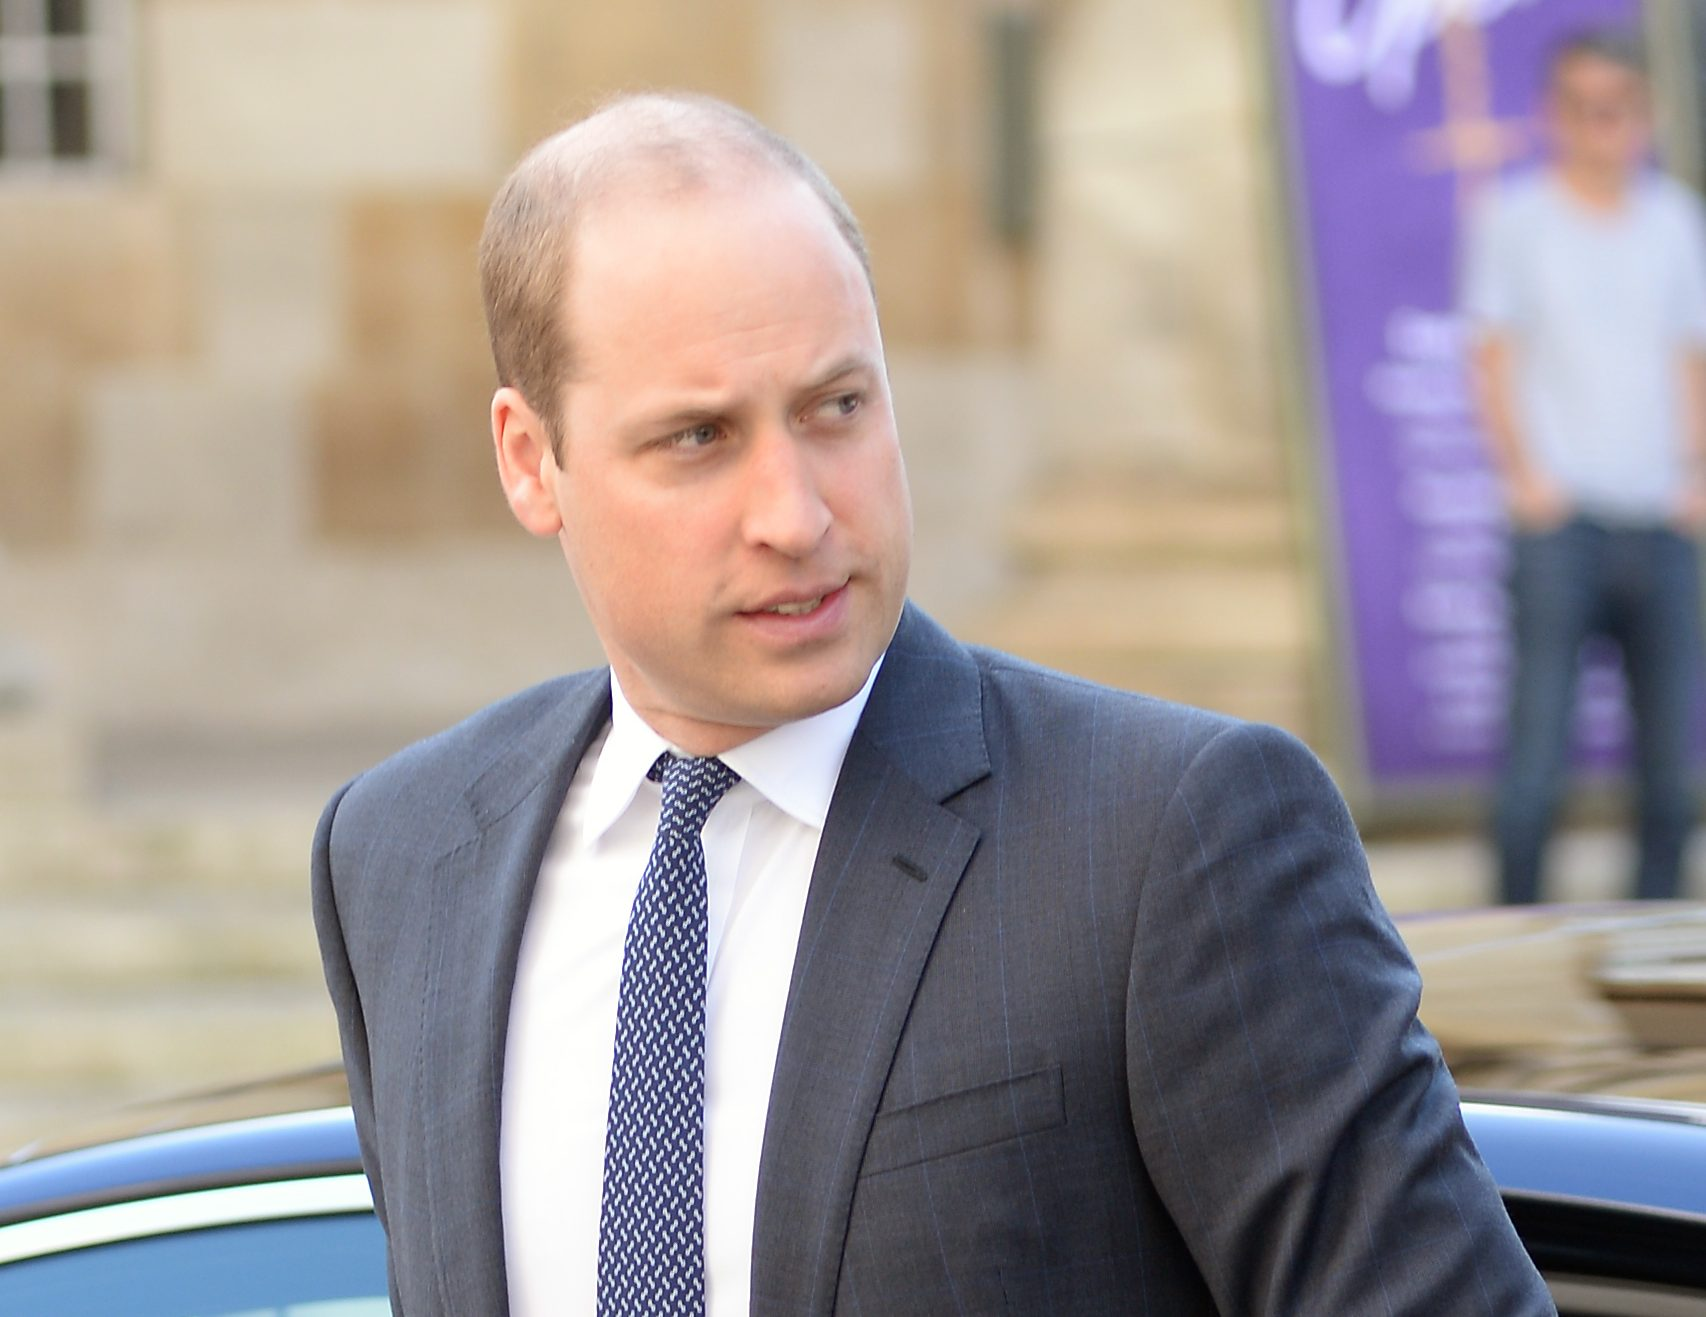 Tragedy as Prince William races to rescue drowning boy